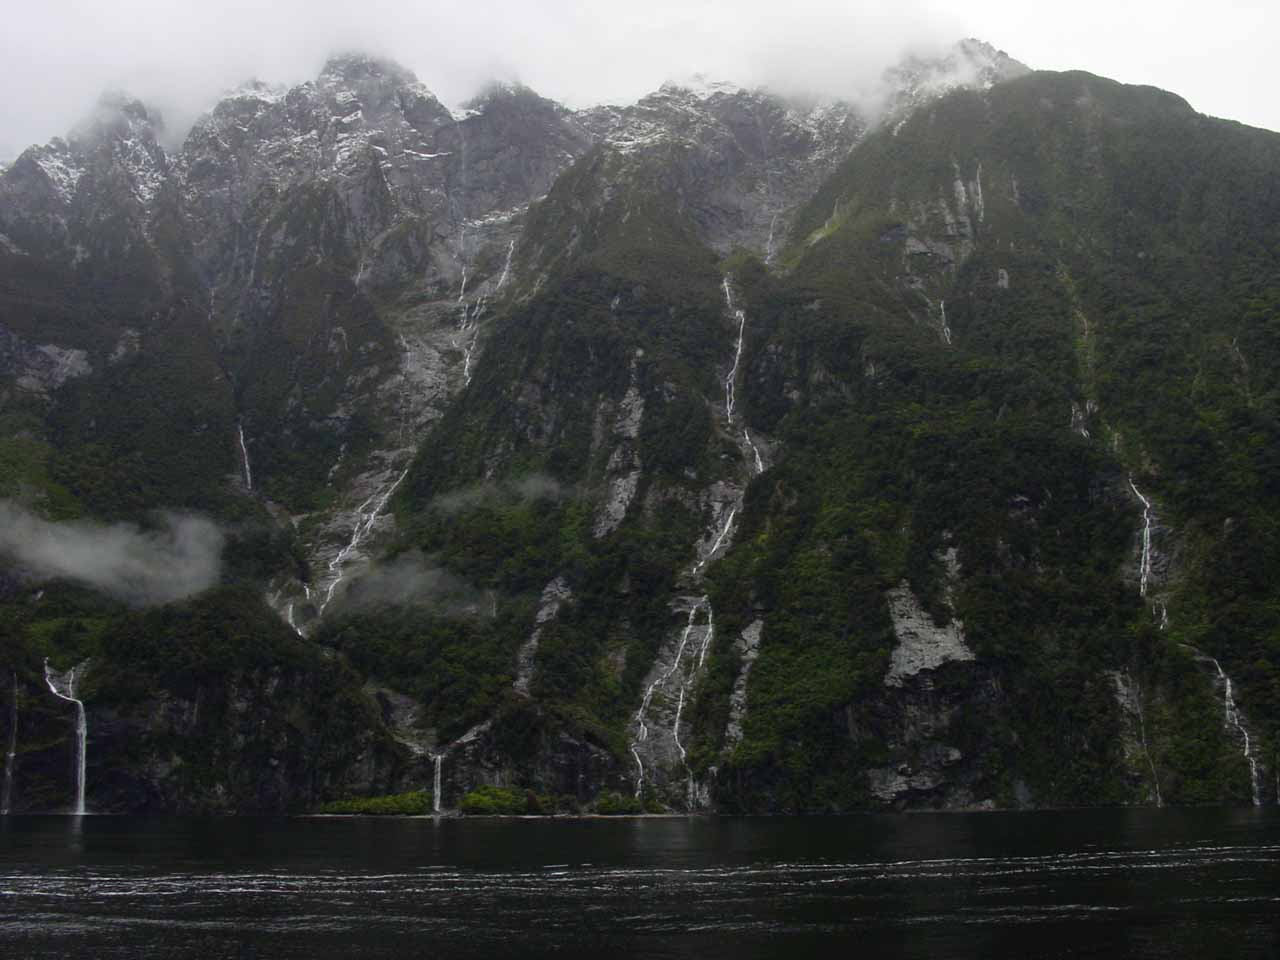 Looking across the fiord from its north side at the context of both Fairy Falls and Bridal Veil Falls